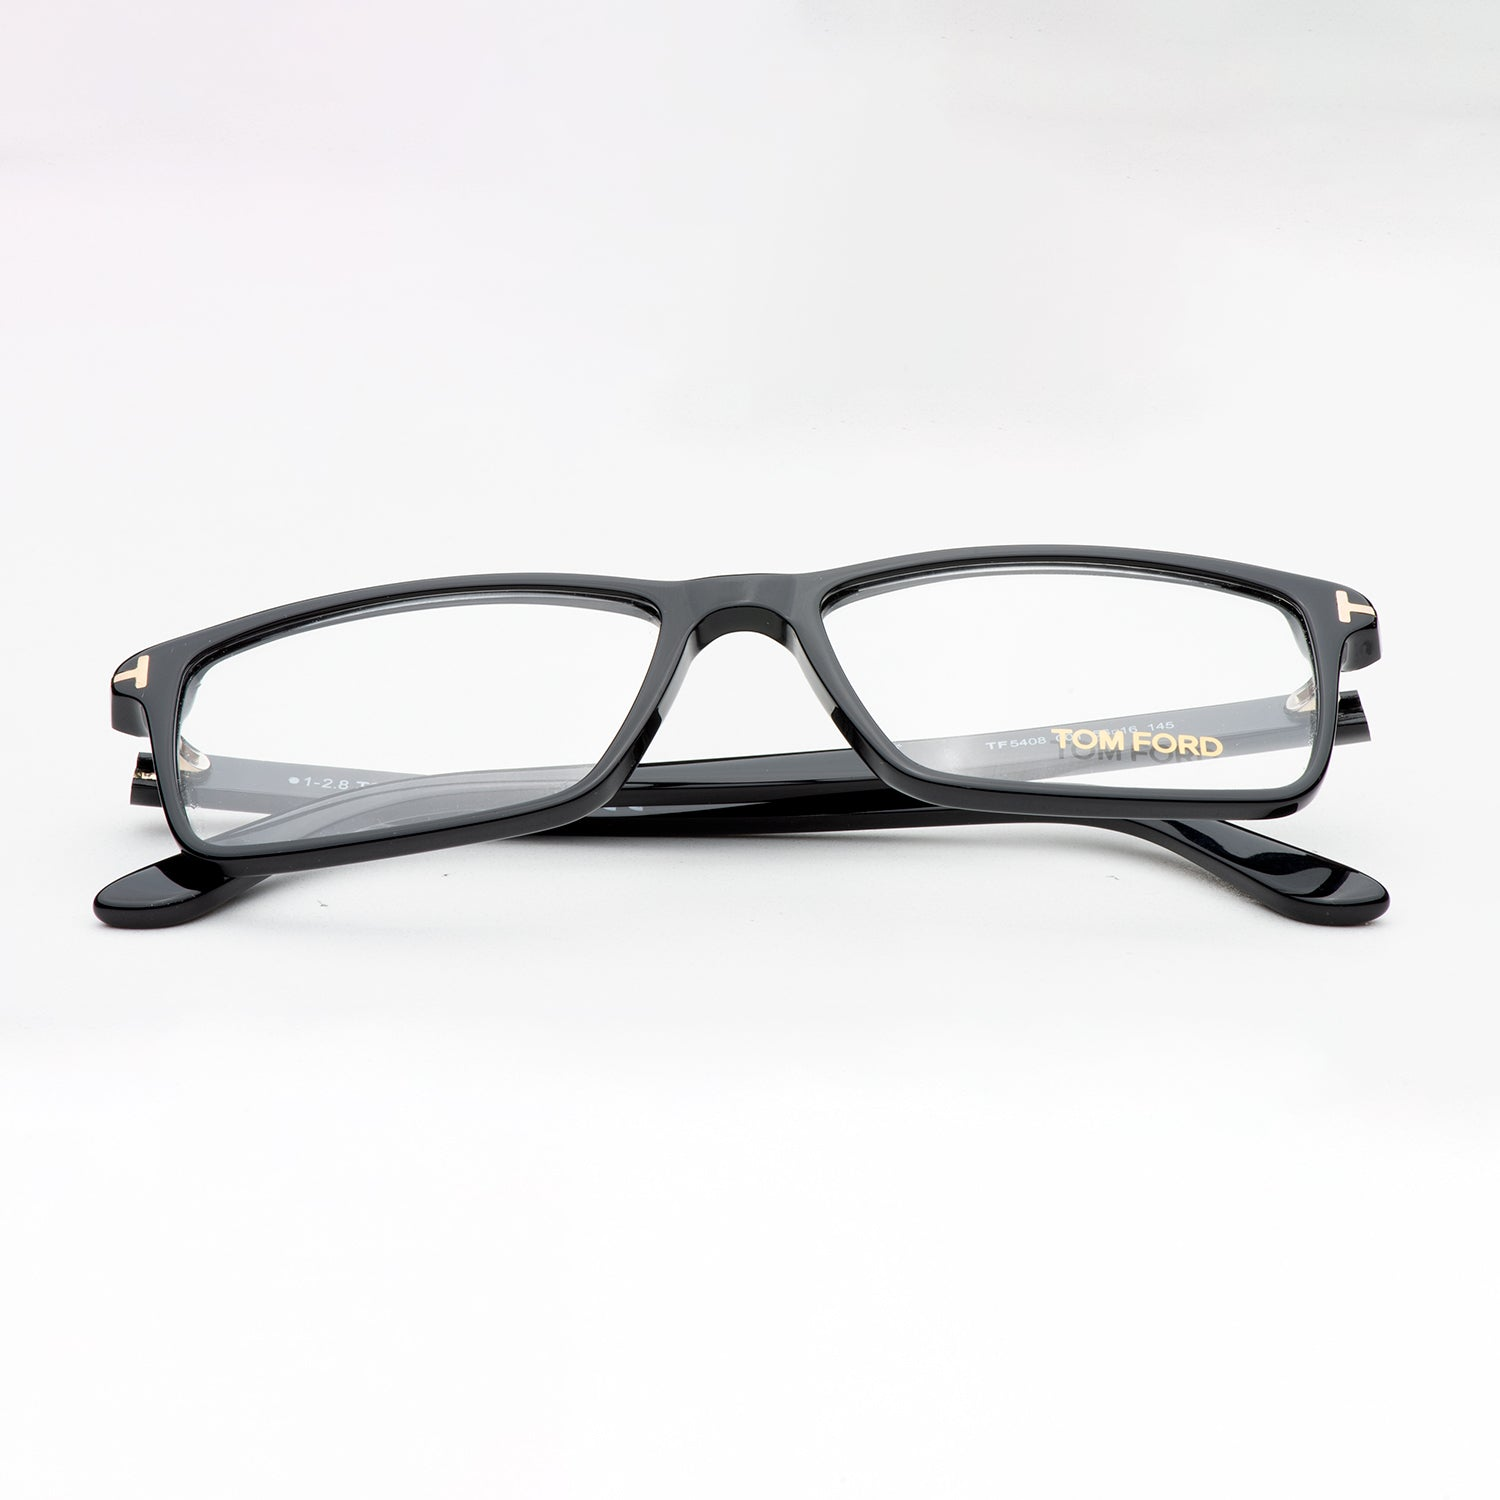 Tom Ford 5408 Prescription Eyeglasses